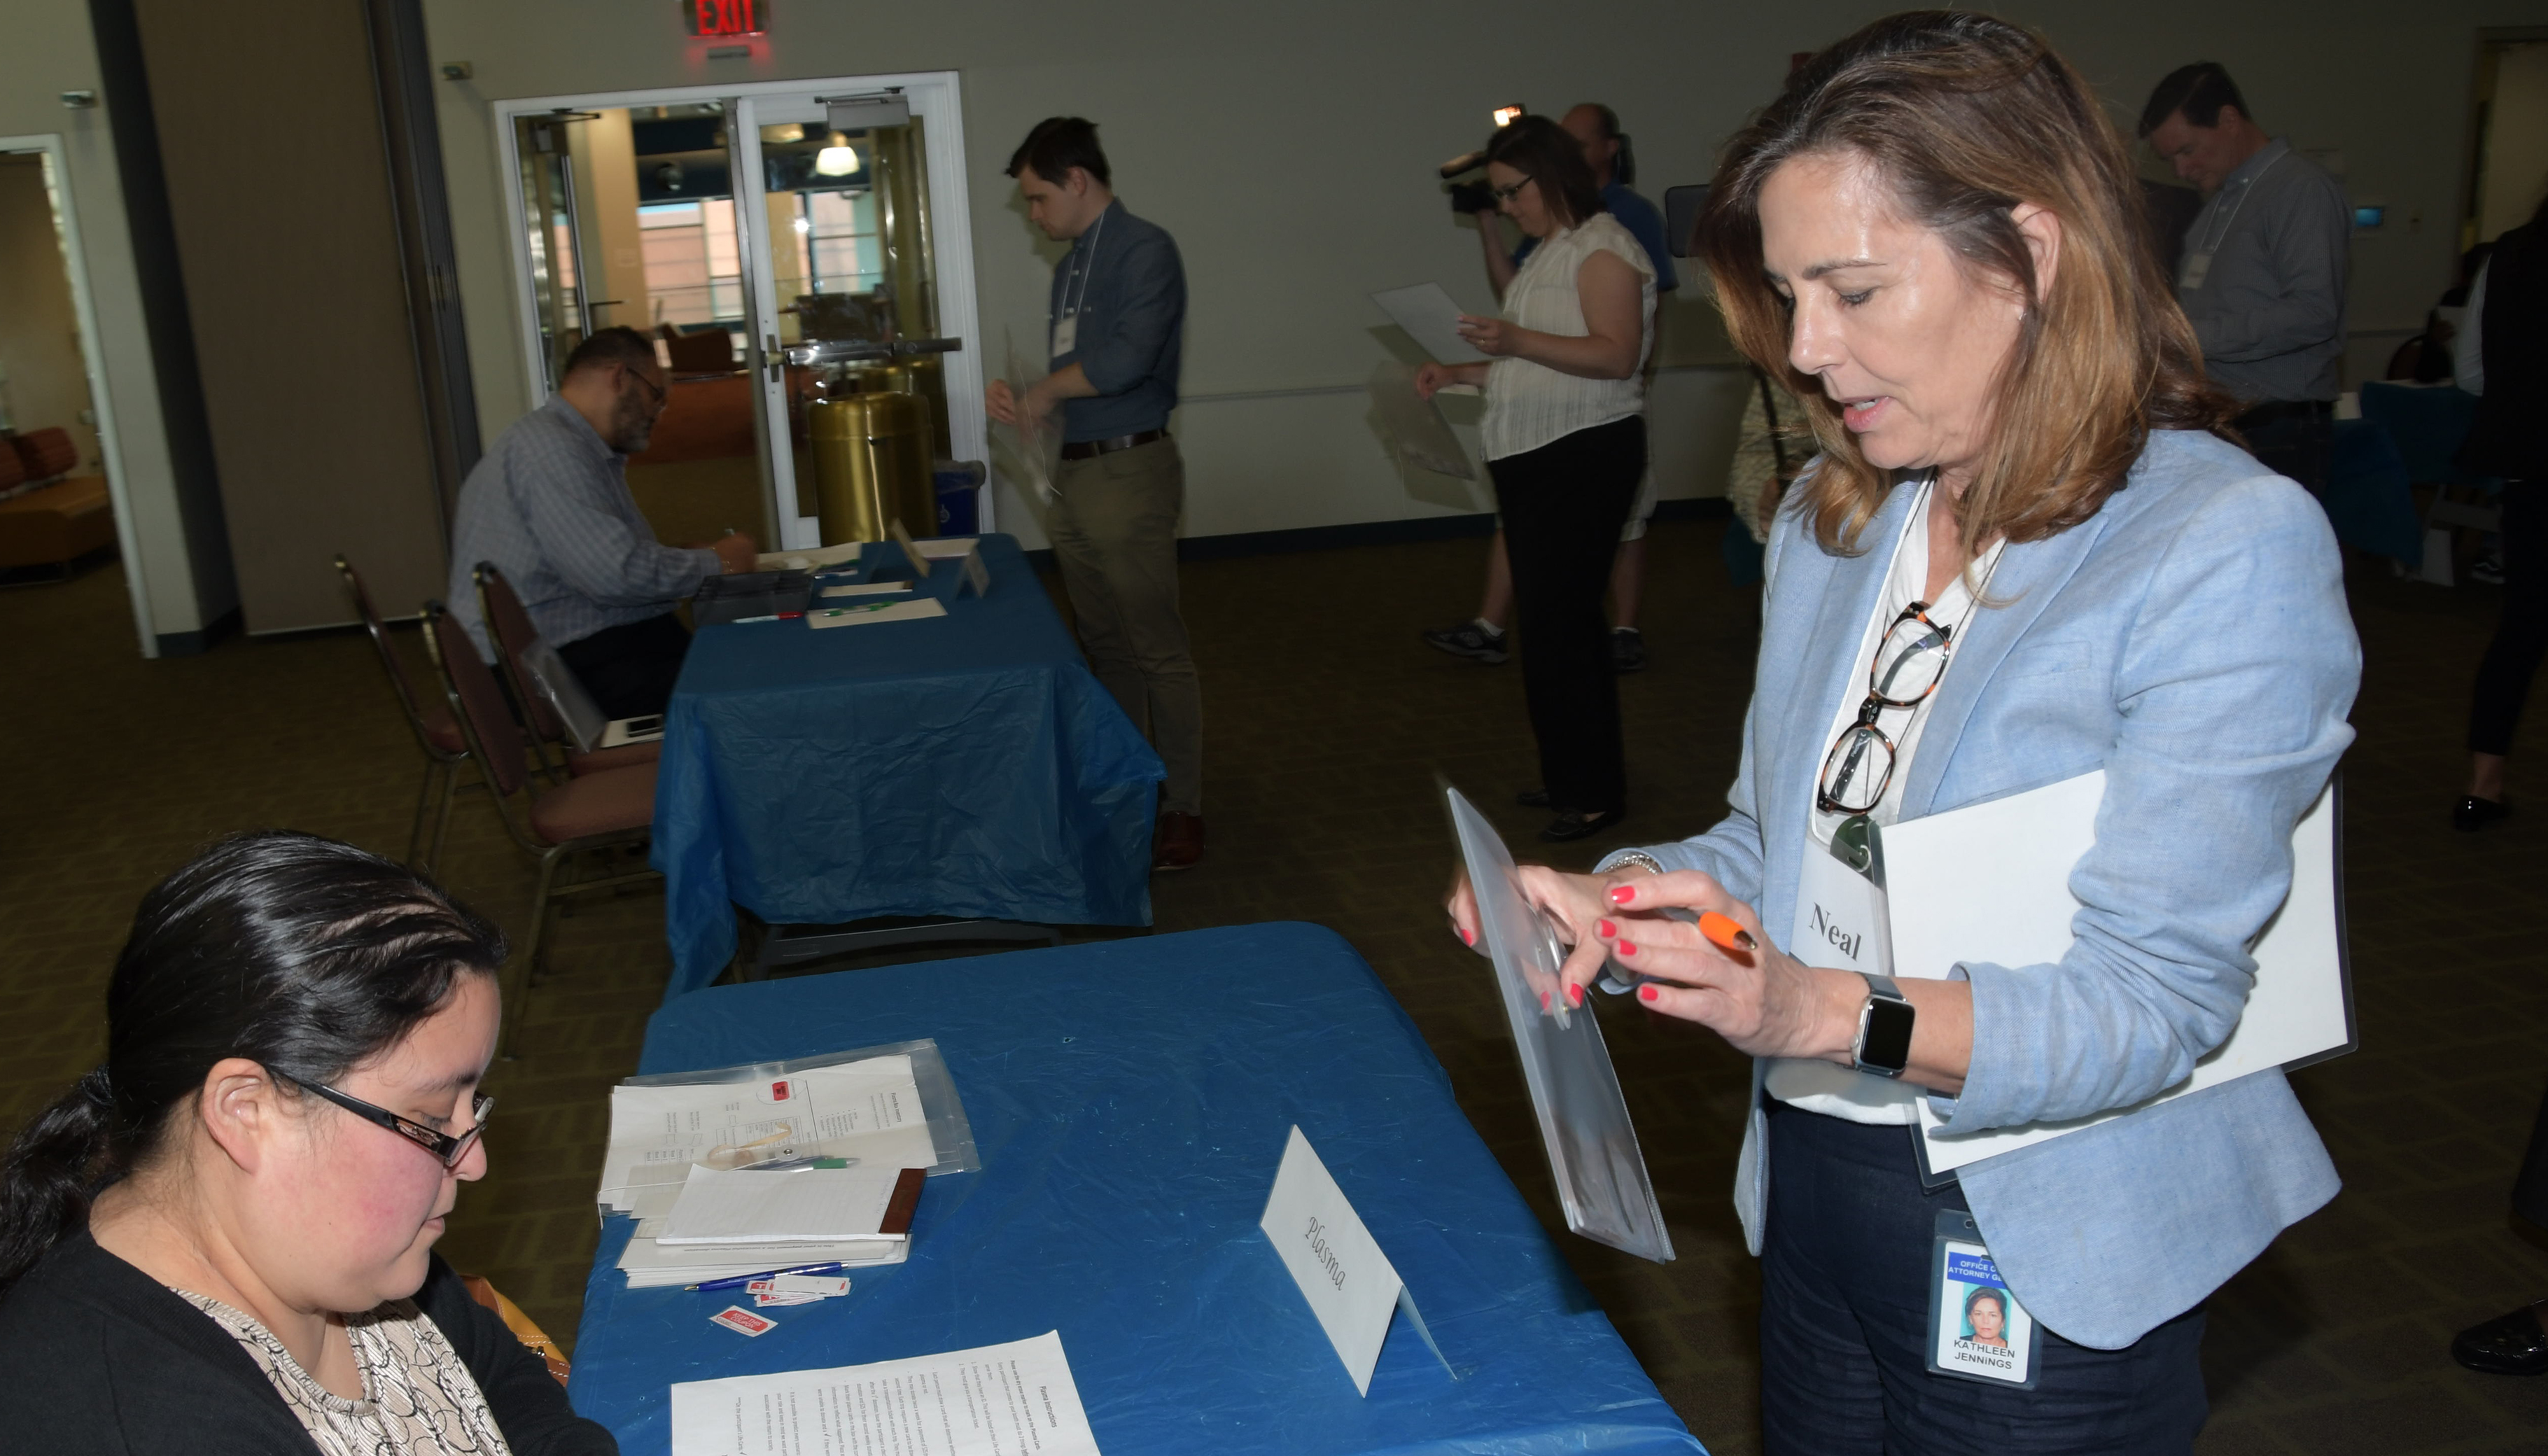 State Attorney General Kathleen Jennings attempts to sell her plasma during the Re-entry Simulation held at Delaware State University.